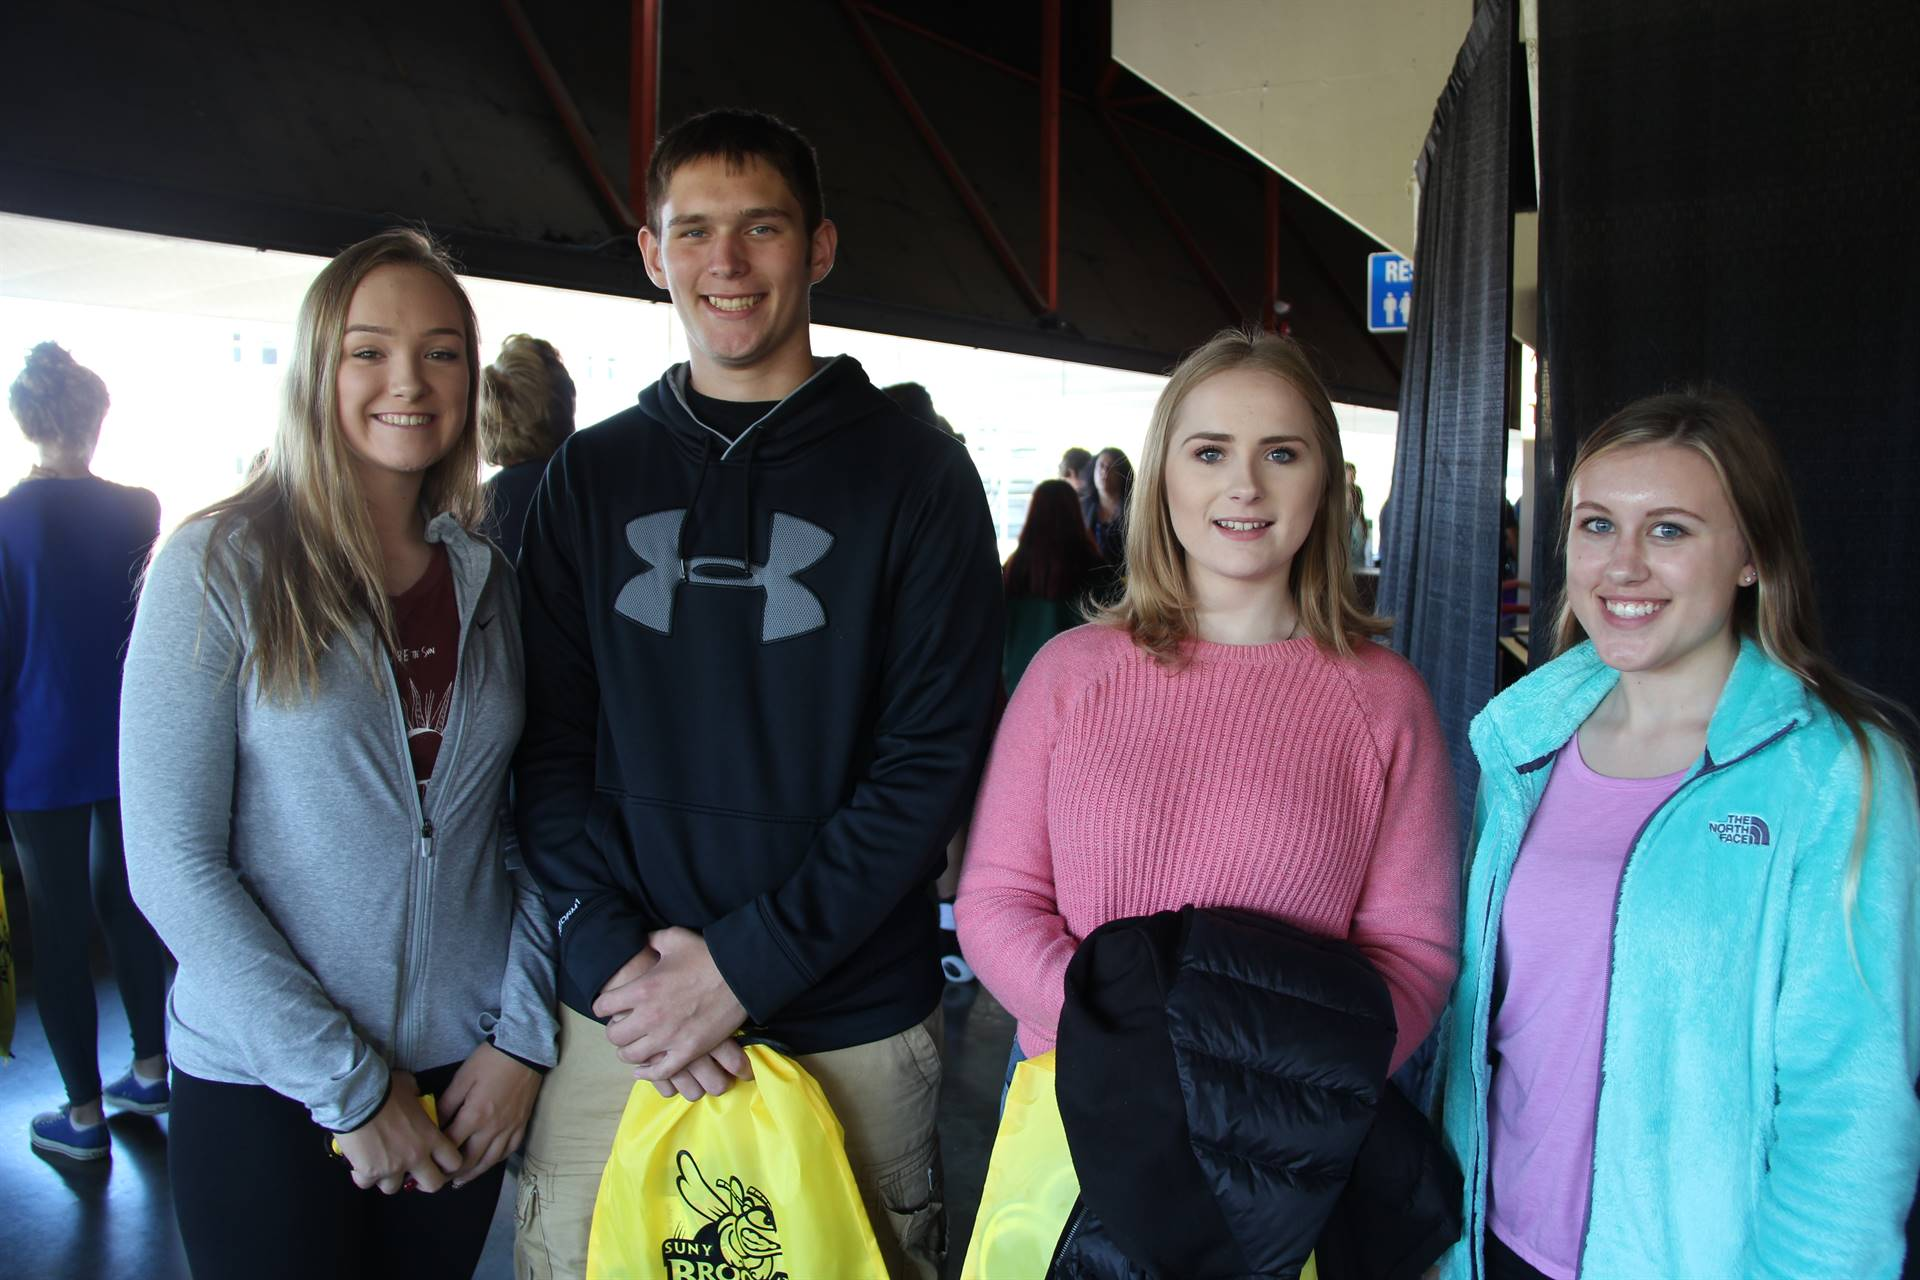 chenango valley high school group of students smile at college day